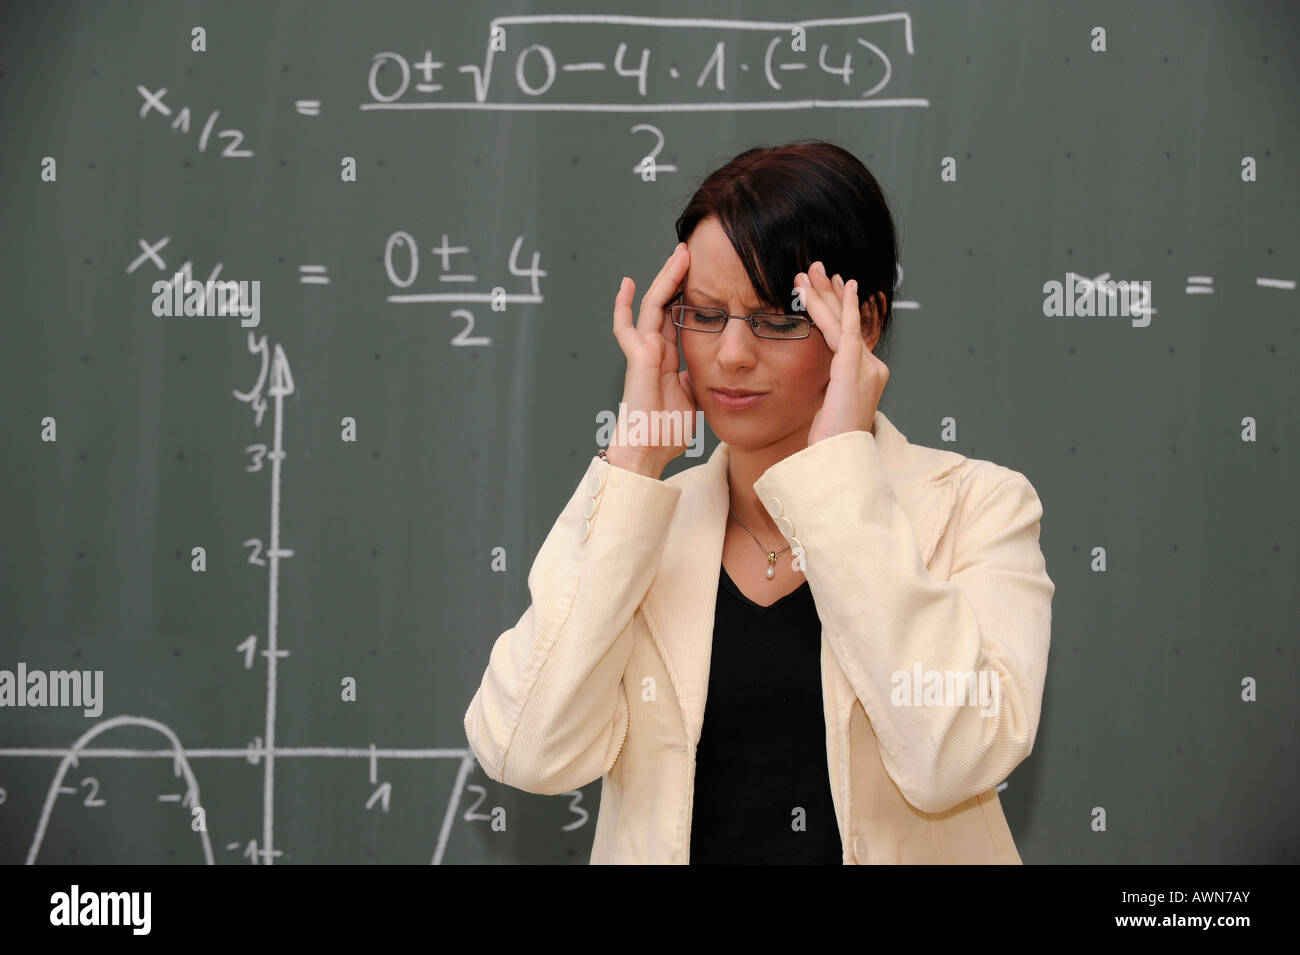 Young female teacher stressed out Stock Photo, Royalty Free Image ...